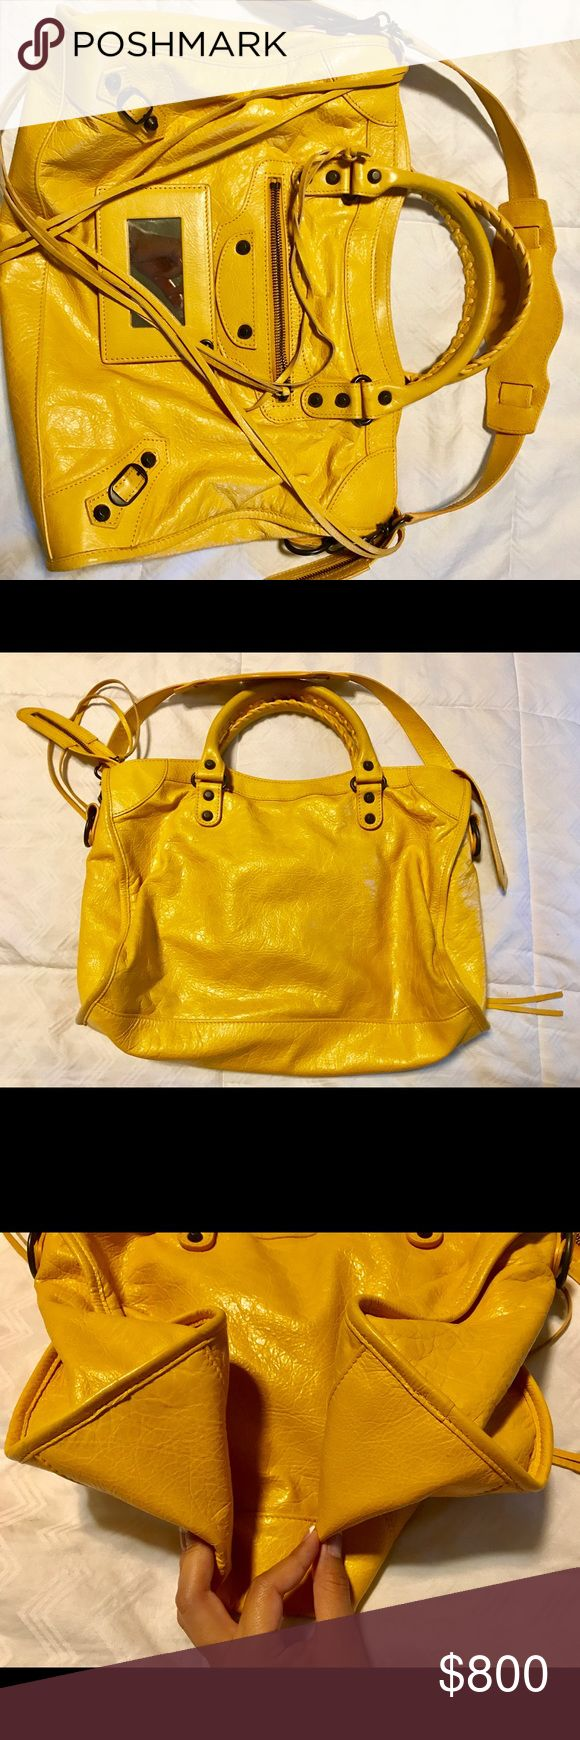 Balenciaga City Bag (Mustard Yellow) Balenciaga City Bag, Mustard Yellow with gunmetal hardware.  Like New condition, hardly any signs of wear. Clean interior. Plastic is still in interior plaque. Mirror is still attached. Included in the sale is the bag only. 🚫 No Trades 🚫 No Low Ball Offers Balenciaga Bags Satchels